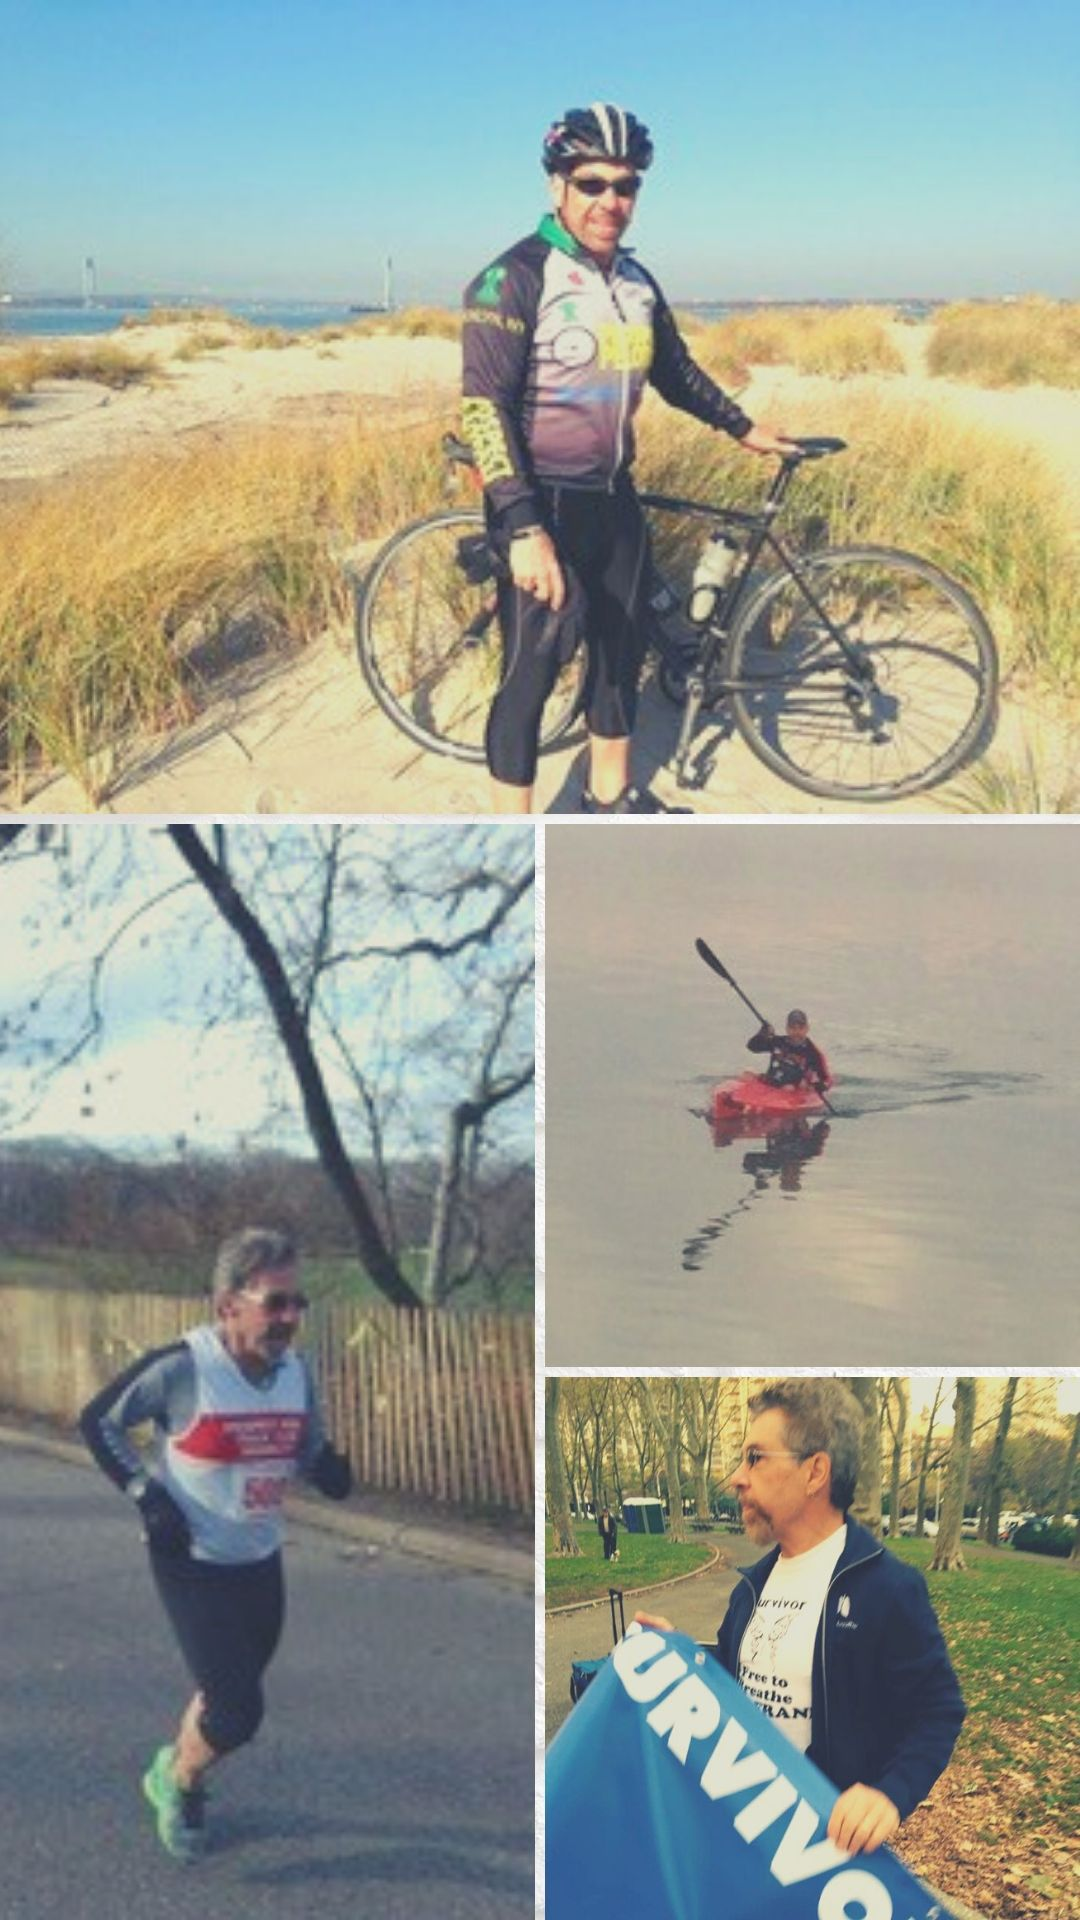 Images of Frank running, biking, kayaking and advocating for lung cancer research and treatment